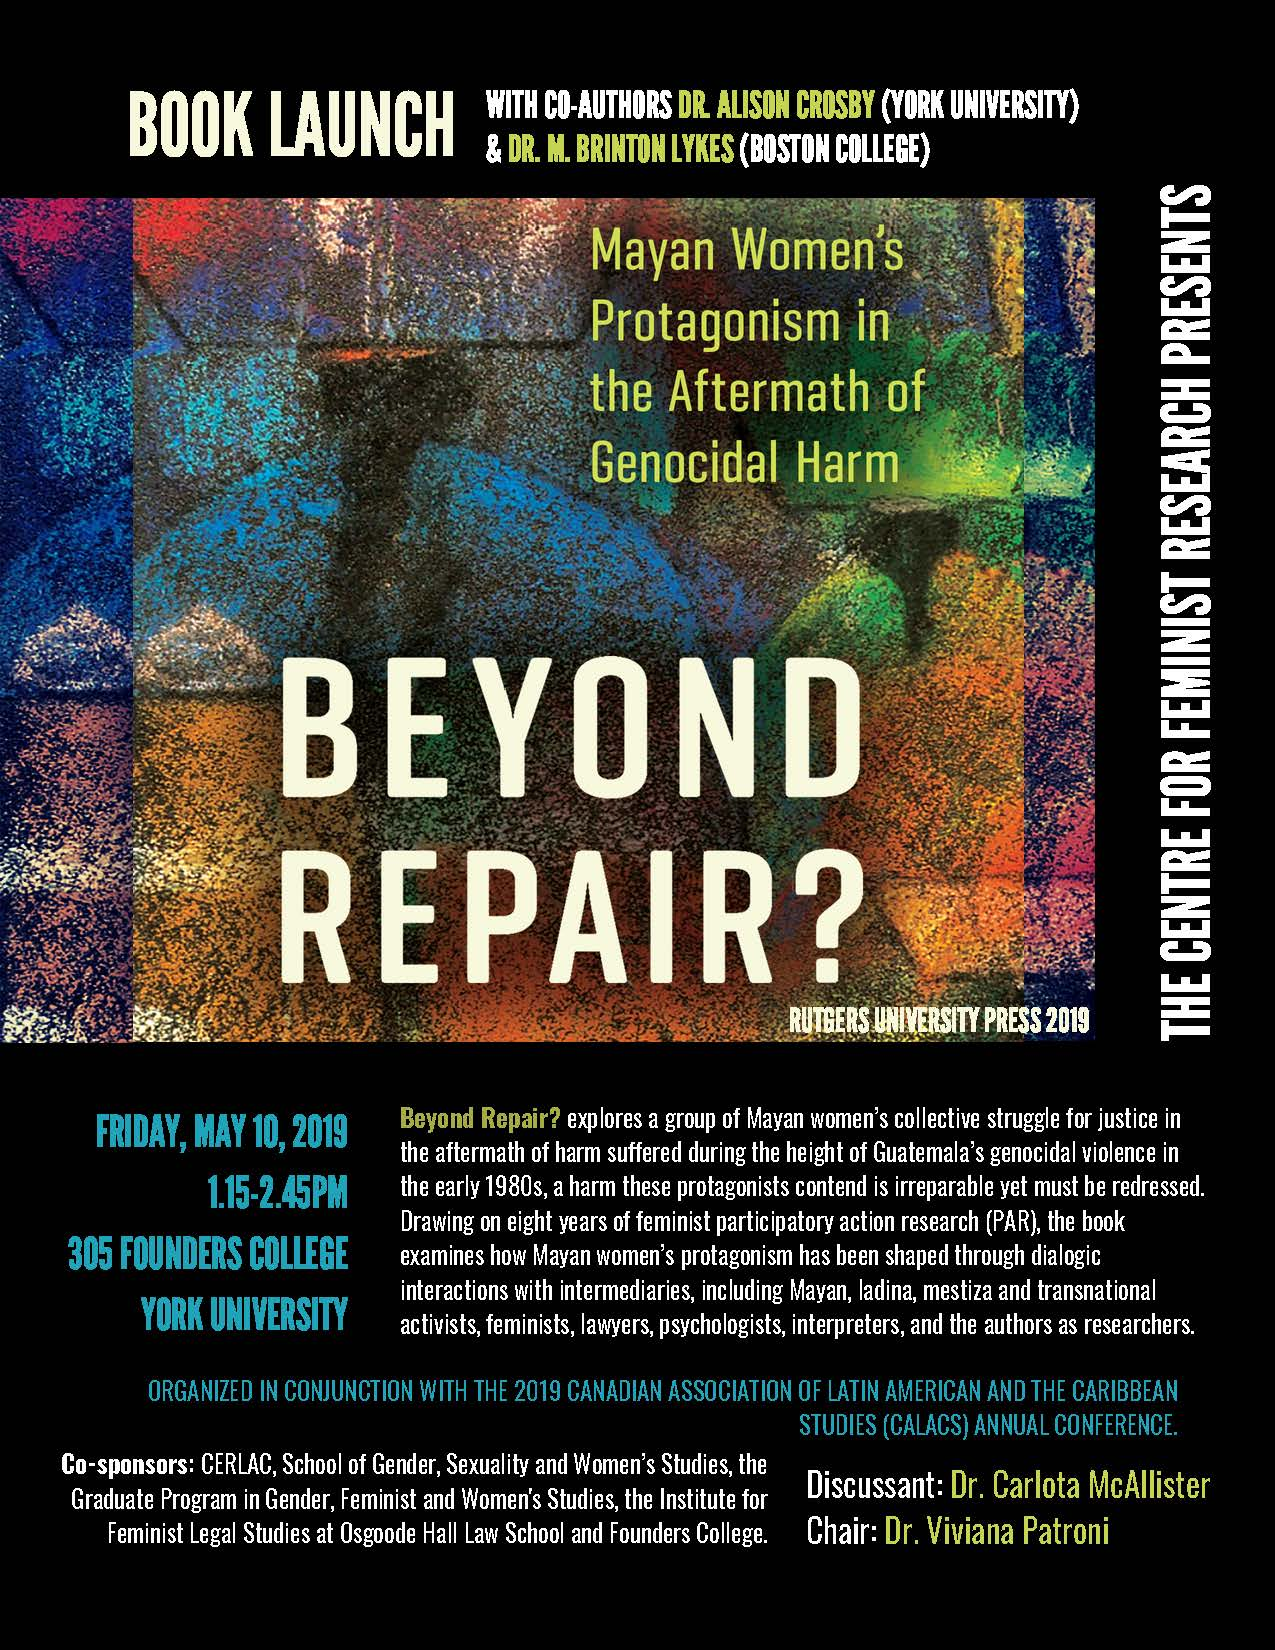 CFR Book launch:  Beyond Repair?: Mayan Women's Protagonism in the Aftermath of Genocidal Harm @ 305 Founders College